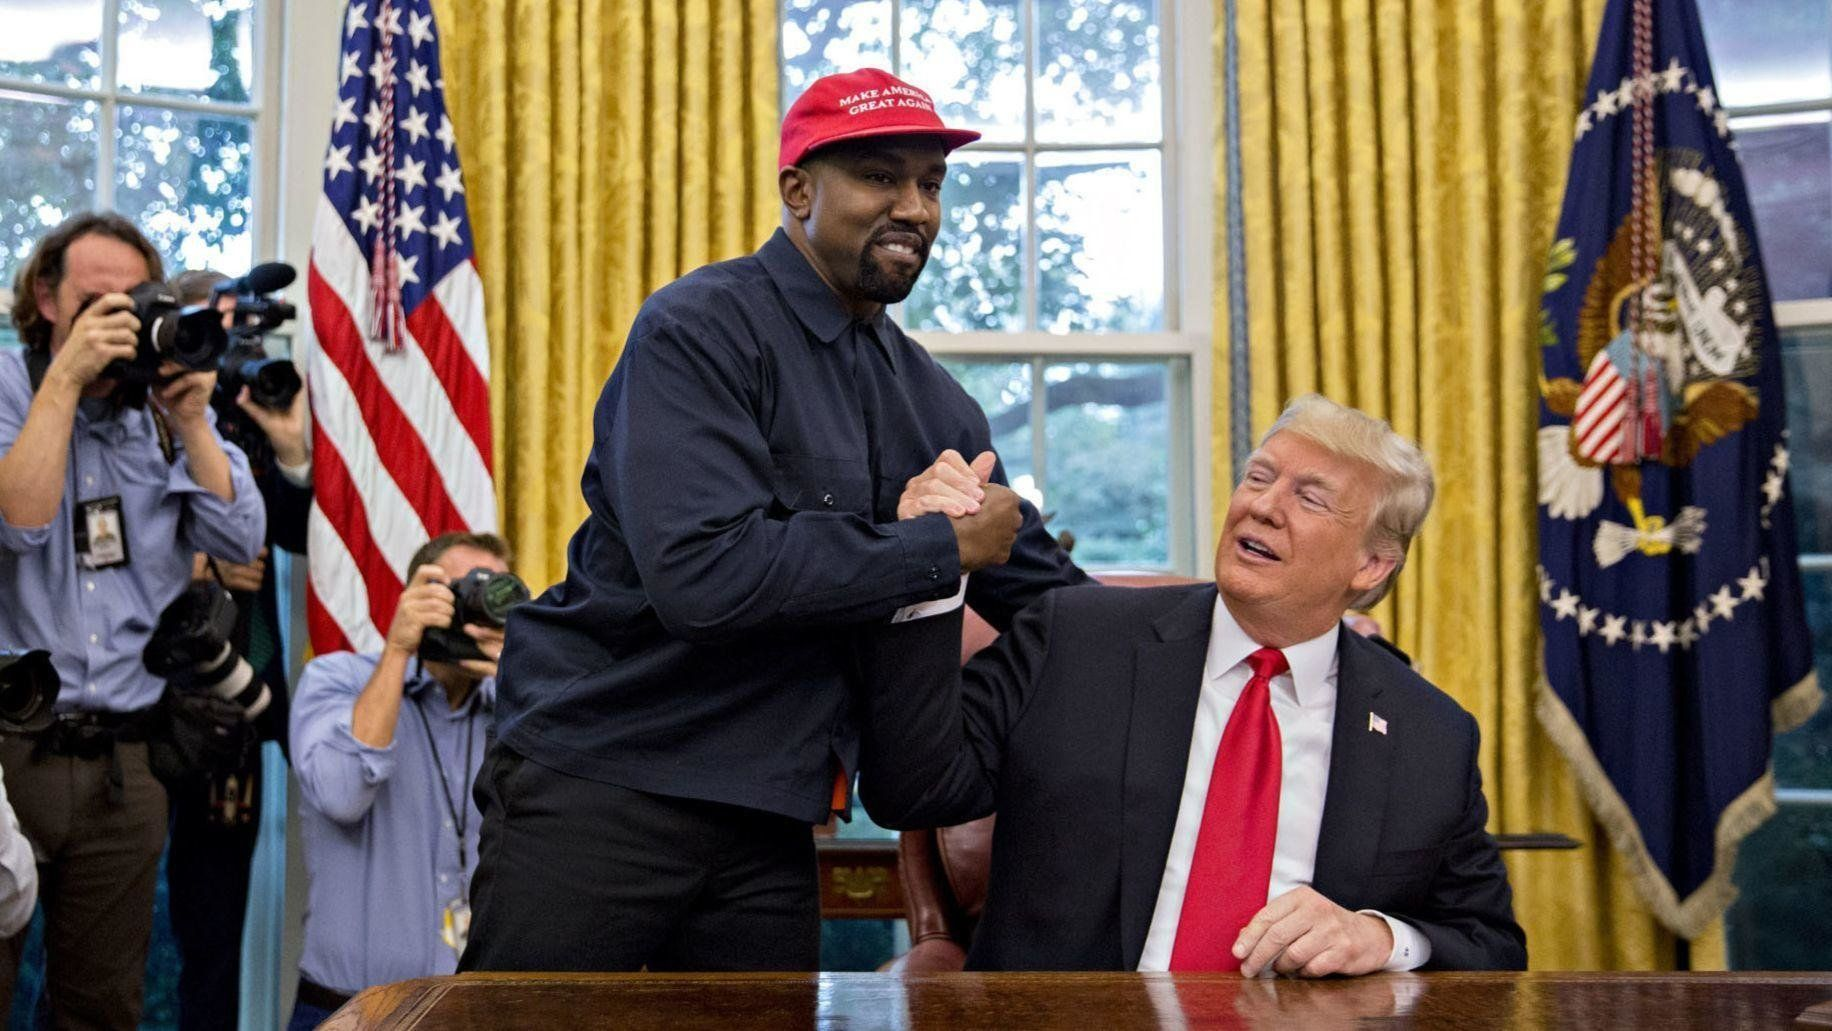 Kanye West S 2018 White House Visit Image Gallery List View With Images Kanye West Trump Supporters Kanye